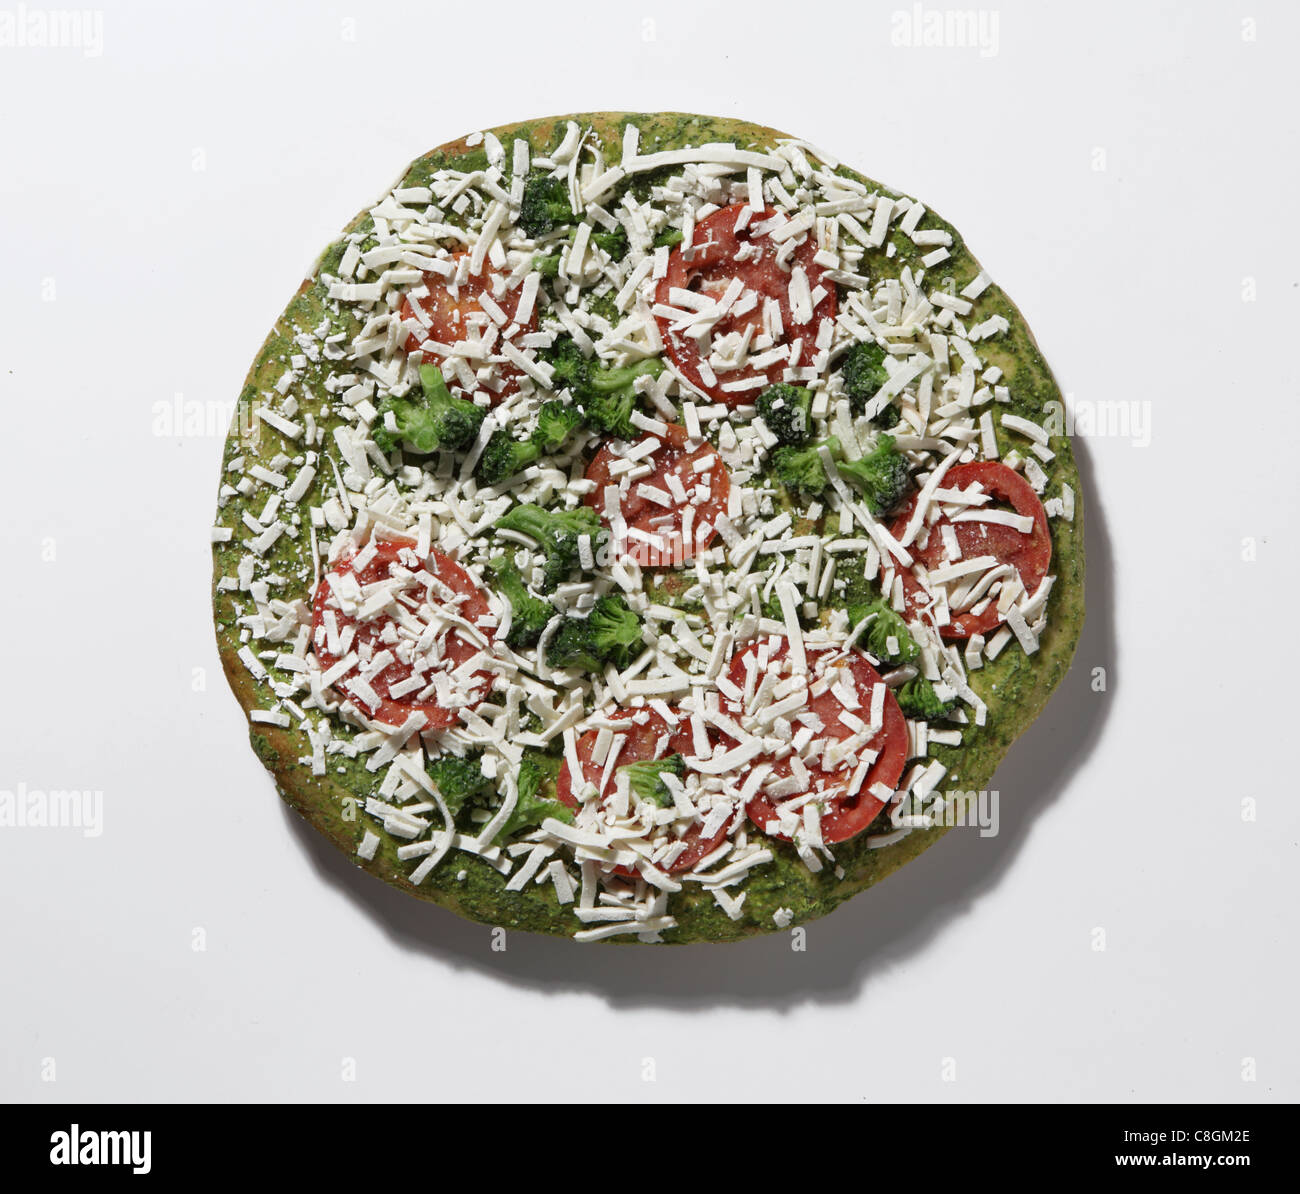 Looking downwards on a frozen pizza. Broccoli, pepperoni, cheese and pesto sauce - Stock Image